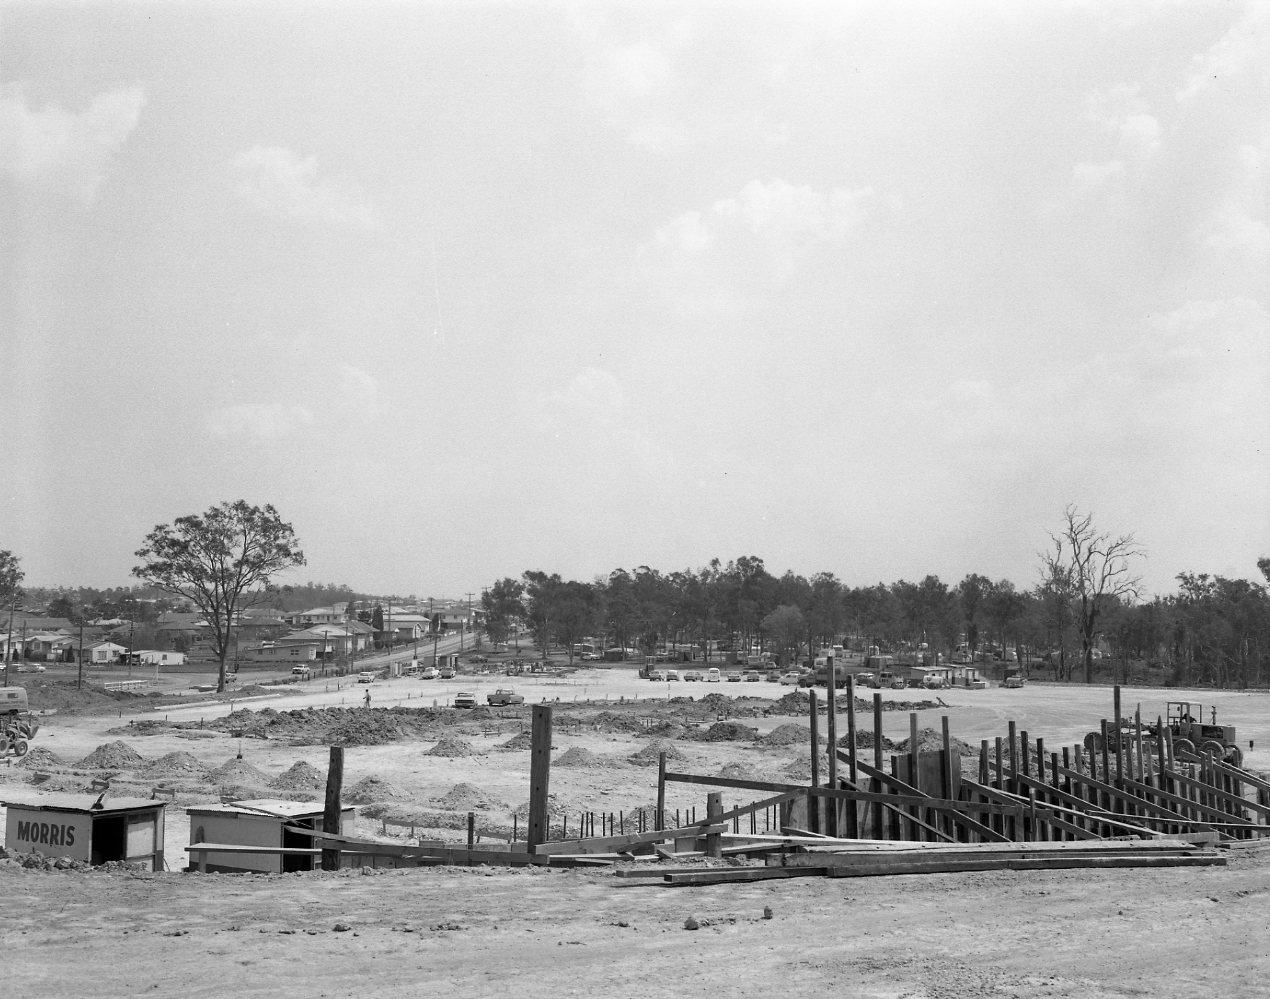 Carina Bus Depot under construction in the 1960s